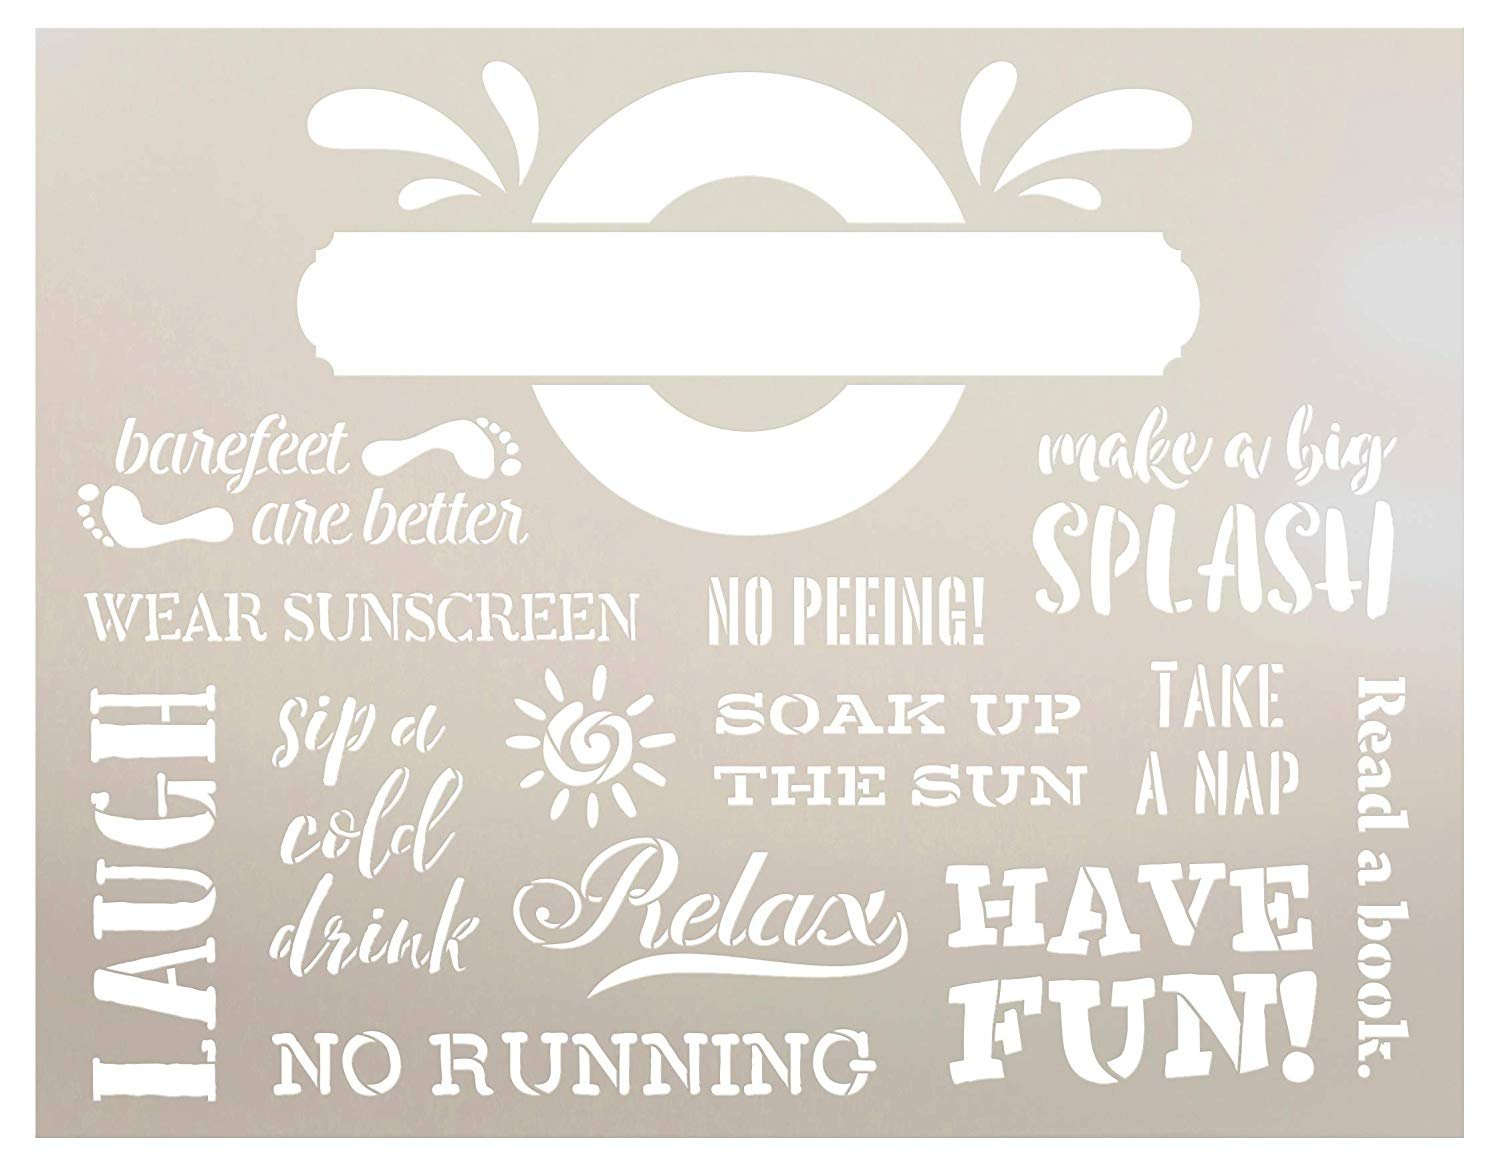 Personalized Pool Rules 2-Part Stencil | DIY Family Summer Outdoor Deck Decor | Backyard BBQ Patio Gift | Craft & Paint Wood Signs | Reusable Mylar Template | Select Size